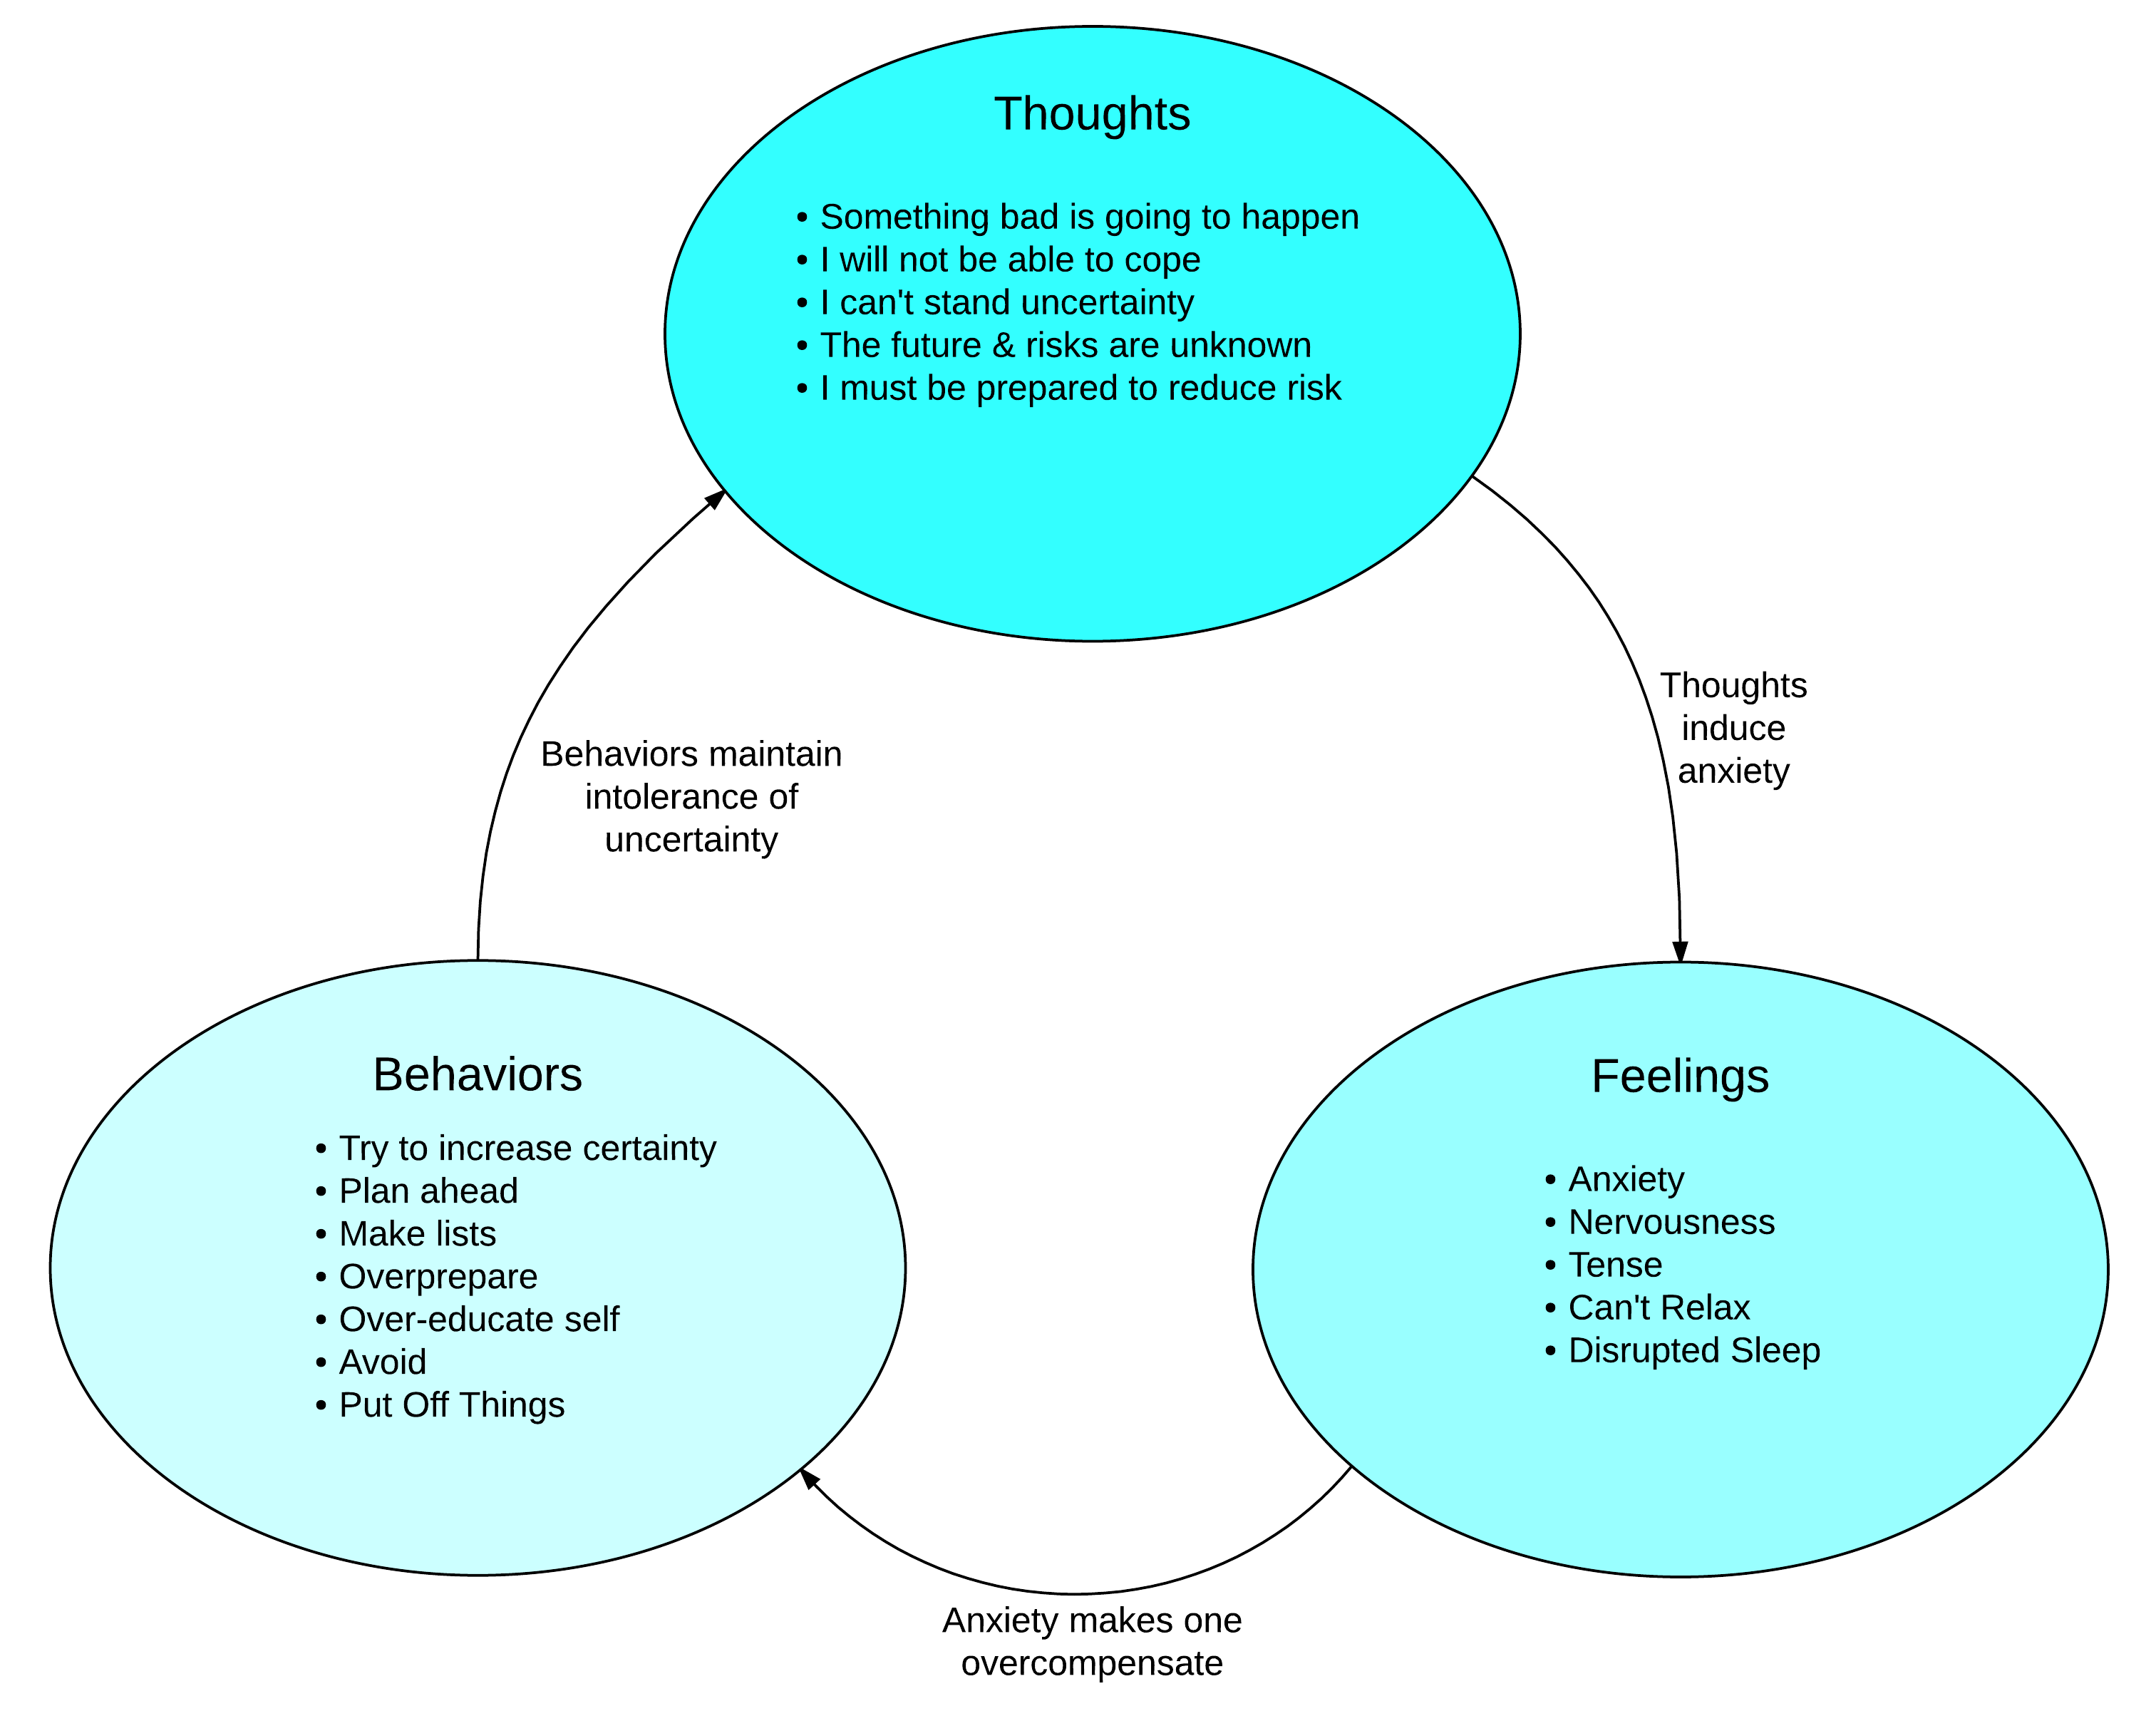 Negative Cycle of Generalized Anxiety Disorder